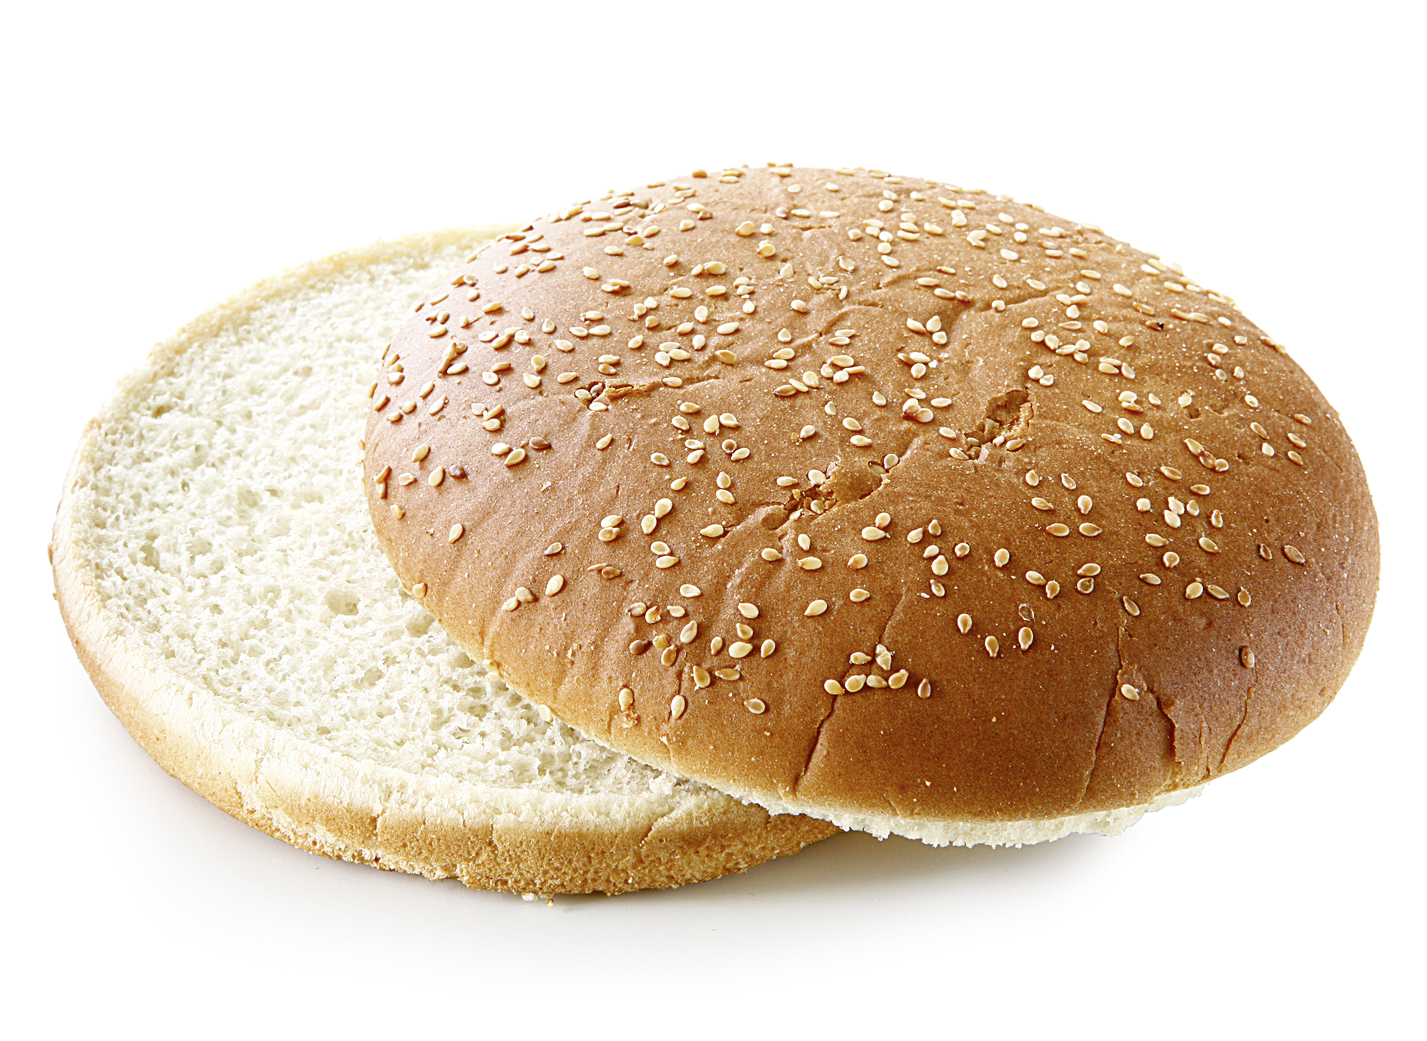 Hamburger Bun Sesame Seeds XL, sliced - Wheat roll in extra big size/ traditional shape/ sprinkled with sesame seeds/ thaw only diameter: 14.5 cm/ 6 Inches